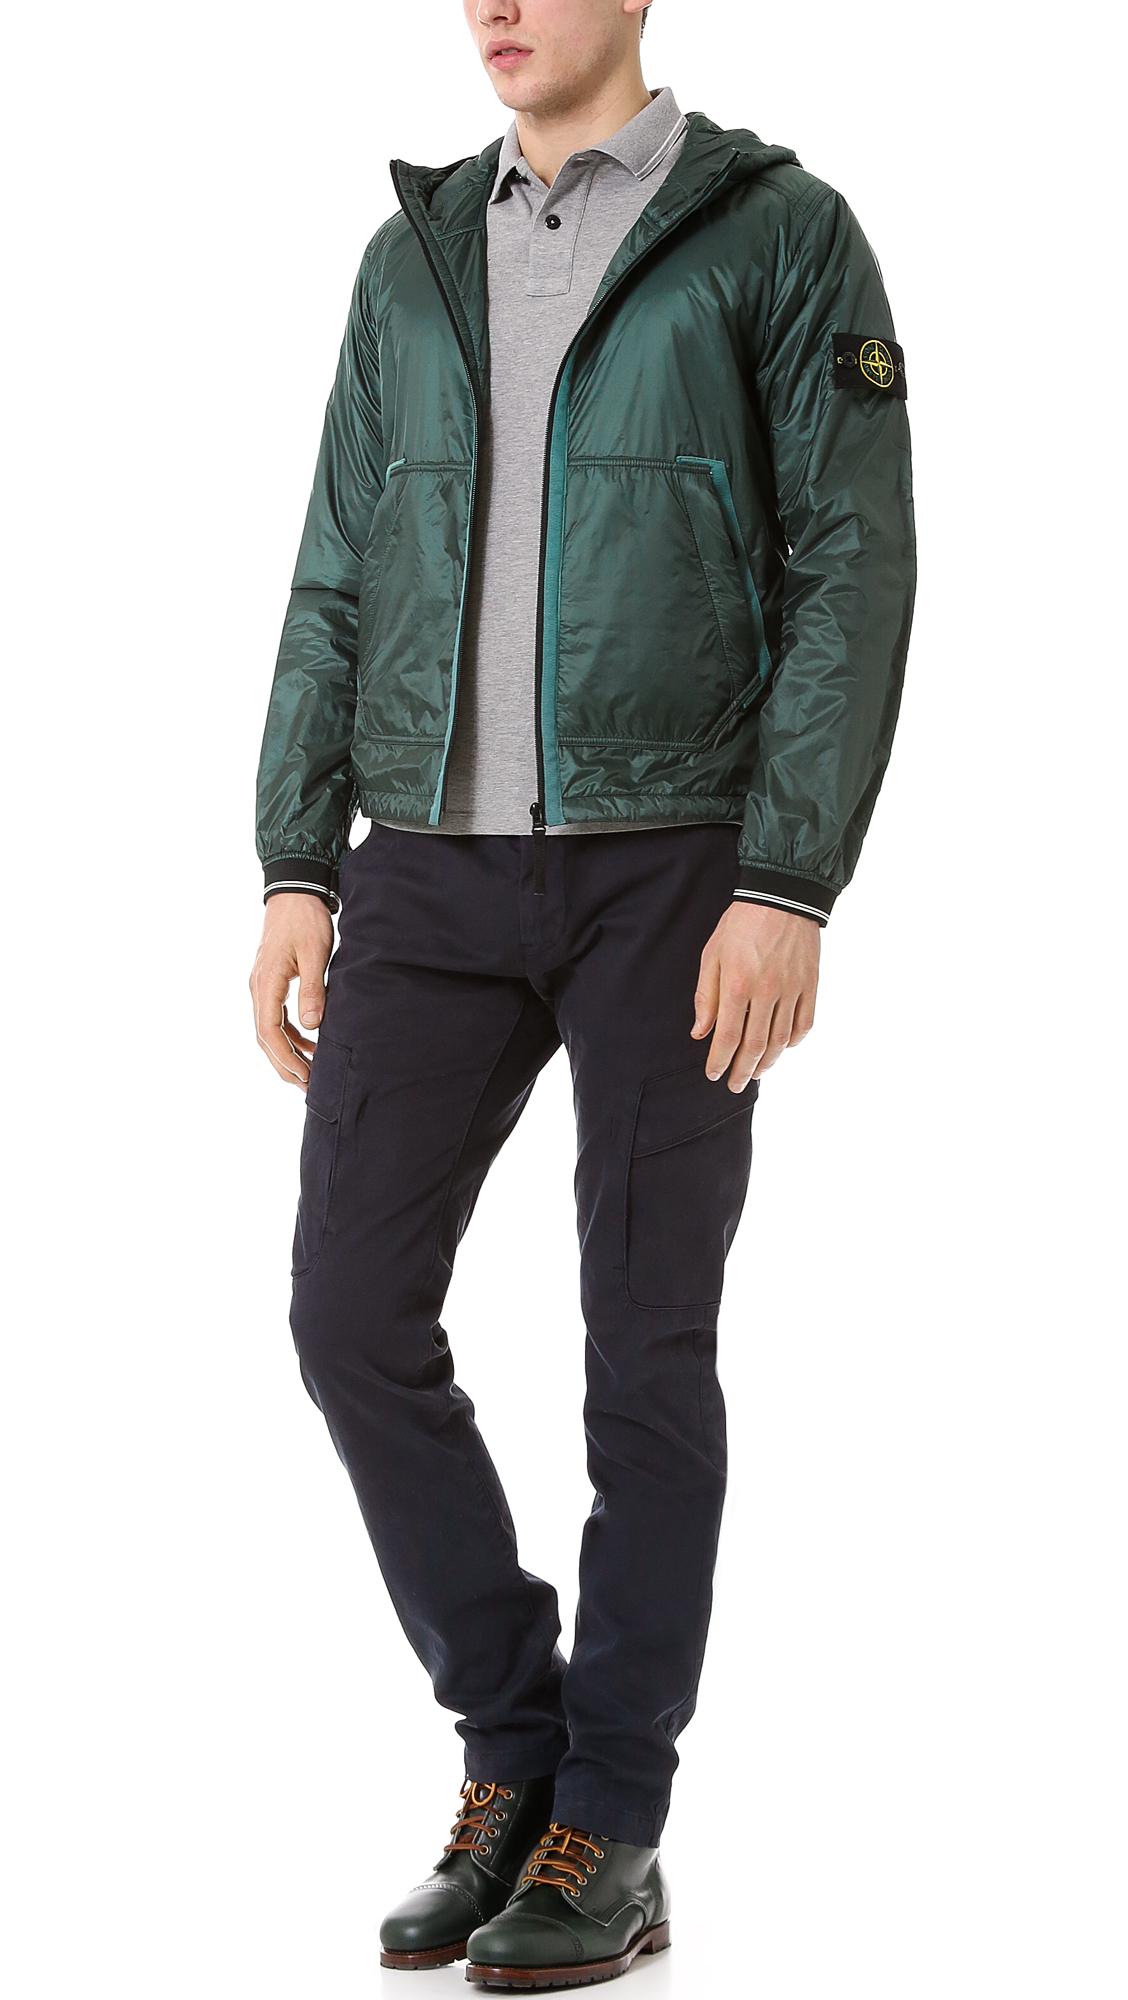 Stone Island Soft Shell: Stone Island Micro Rip Stop Jacket In Green For Men